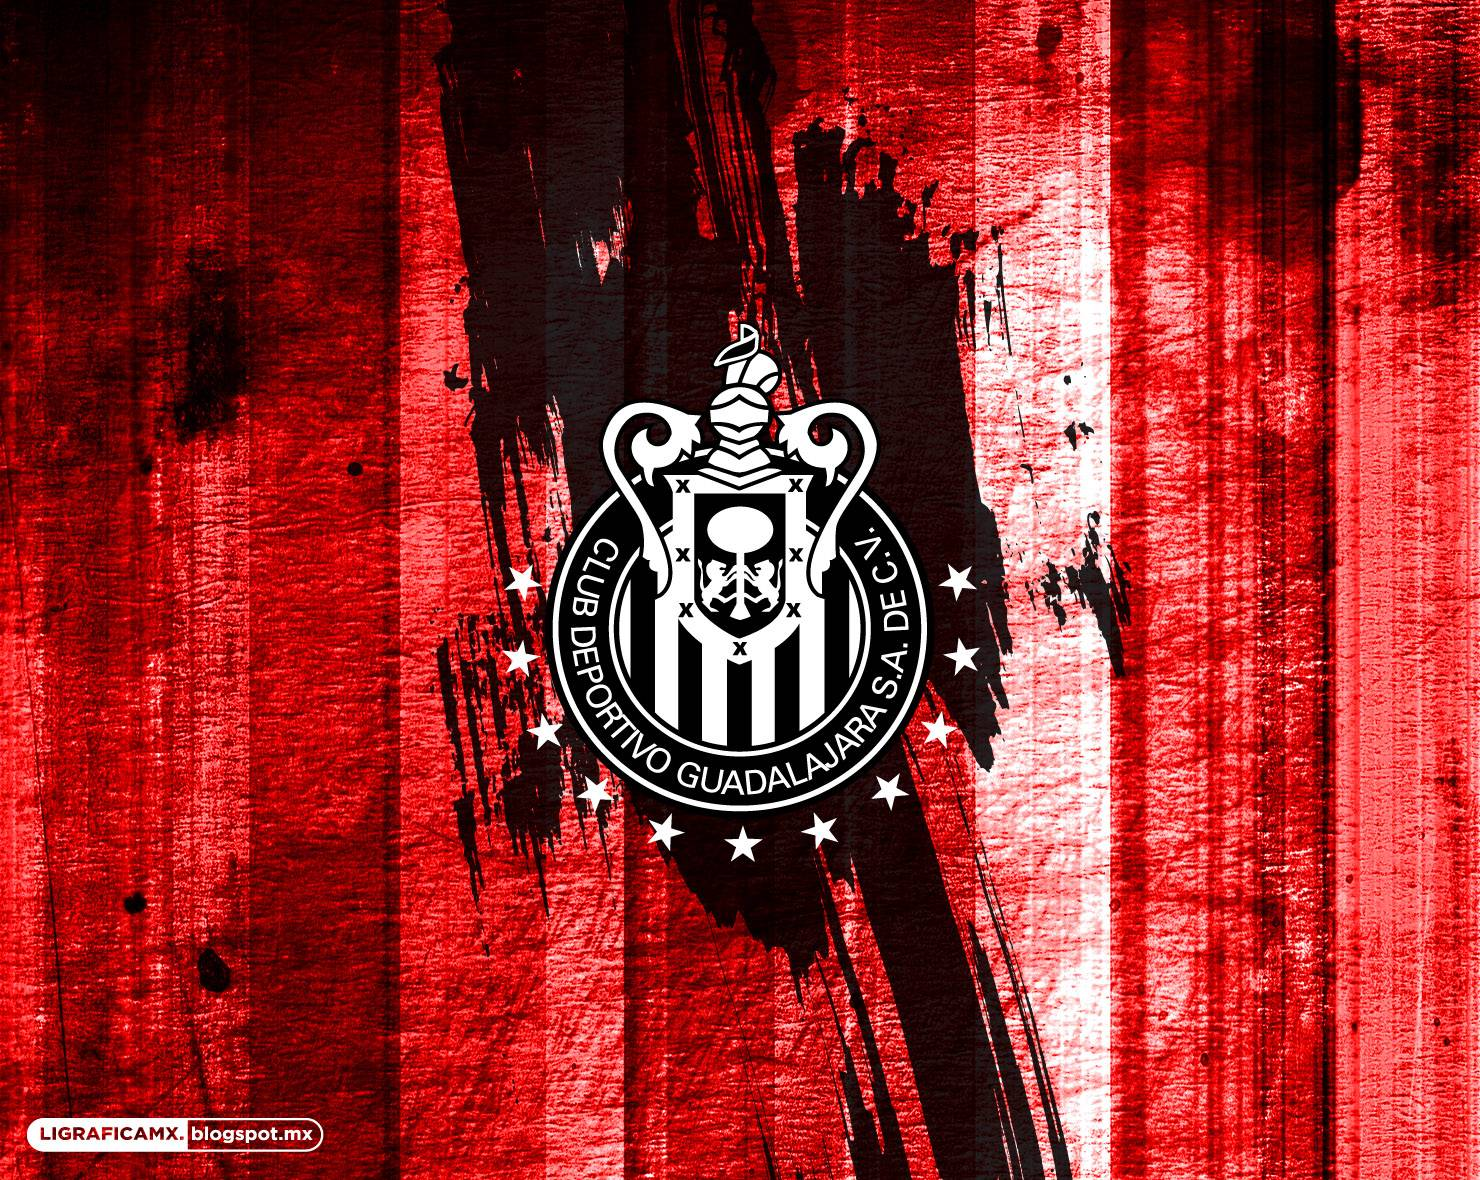 1480x1180 - C.D. Guadalajara Wallpapers 12